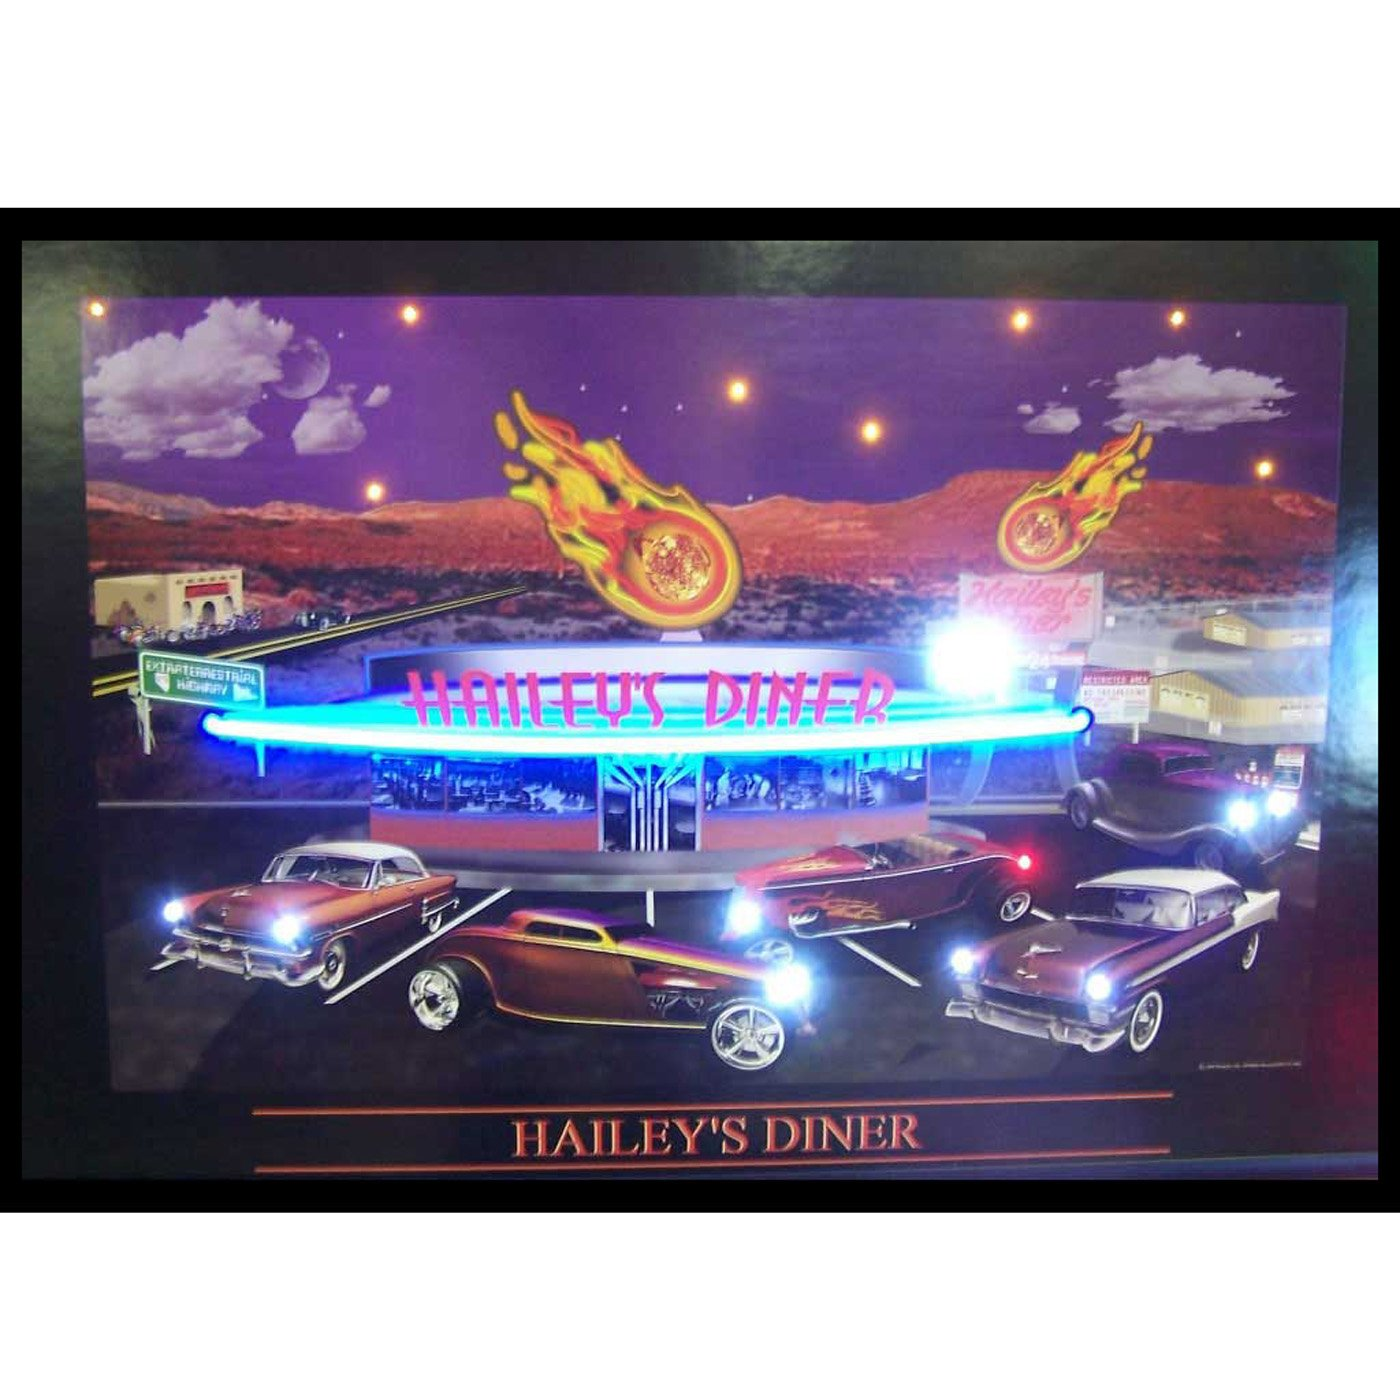 Haileys Diner Neon/LED Picture by Neonetics